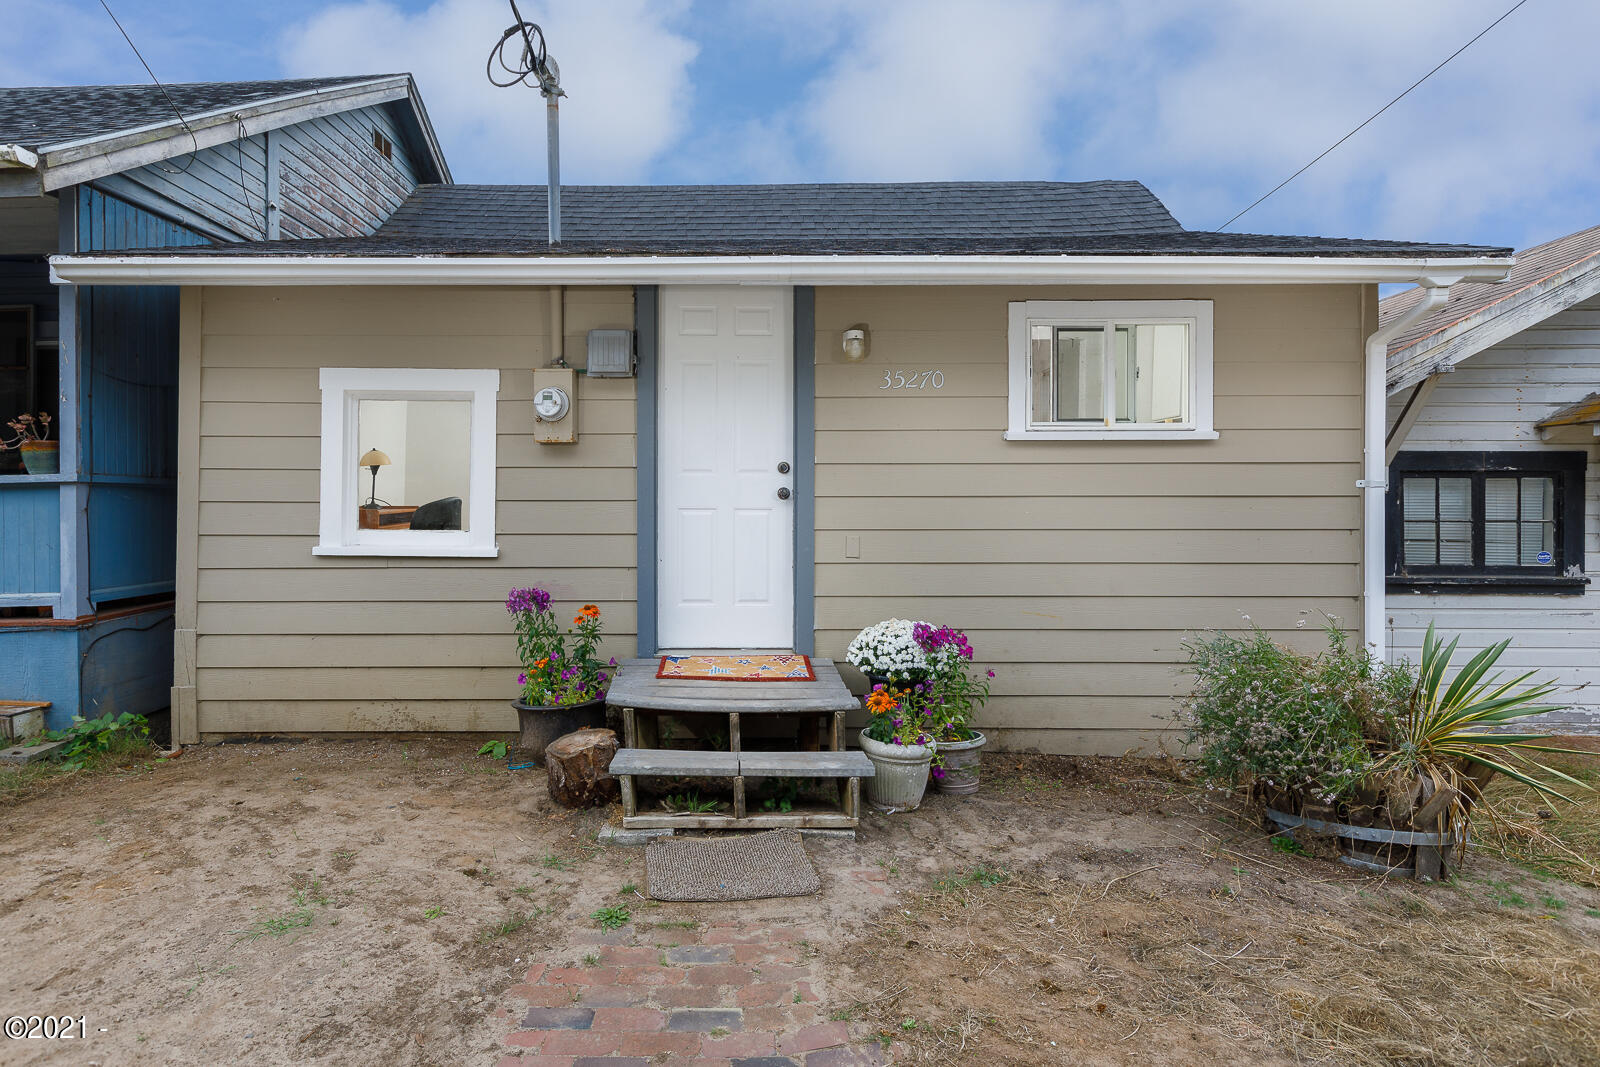 35270 Sixth St, Pacific City, OR 97135 - beach cabin